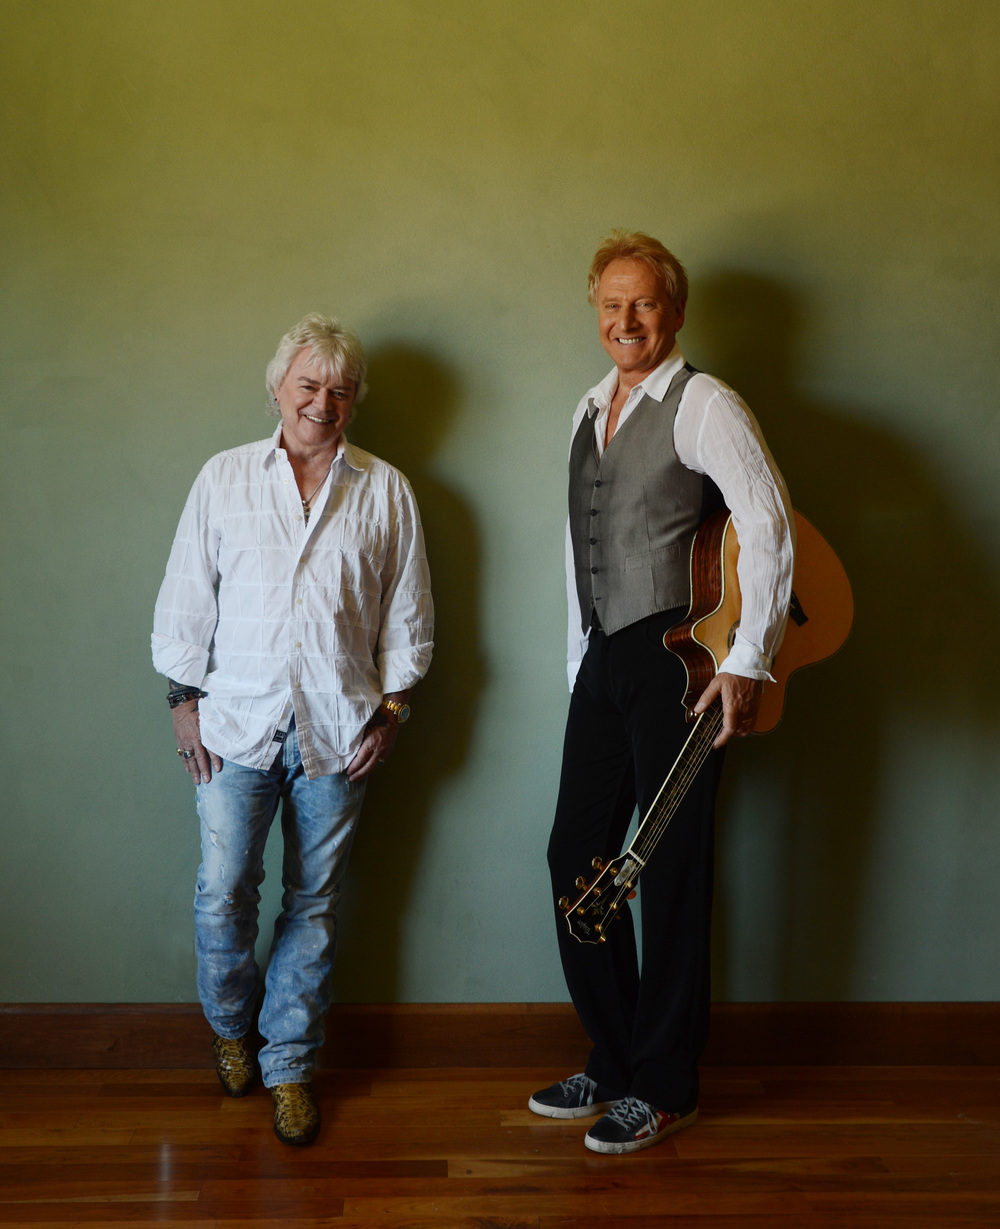 Air Supply. Seriously. Air Supply!